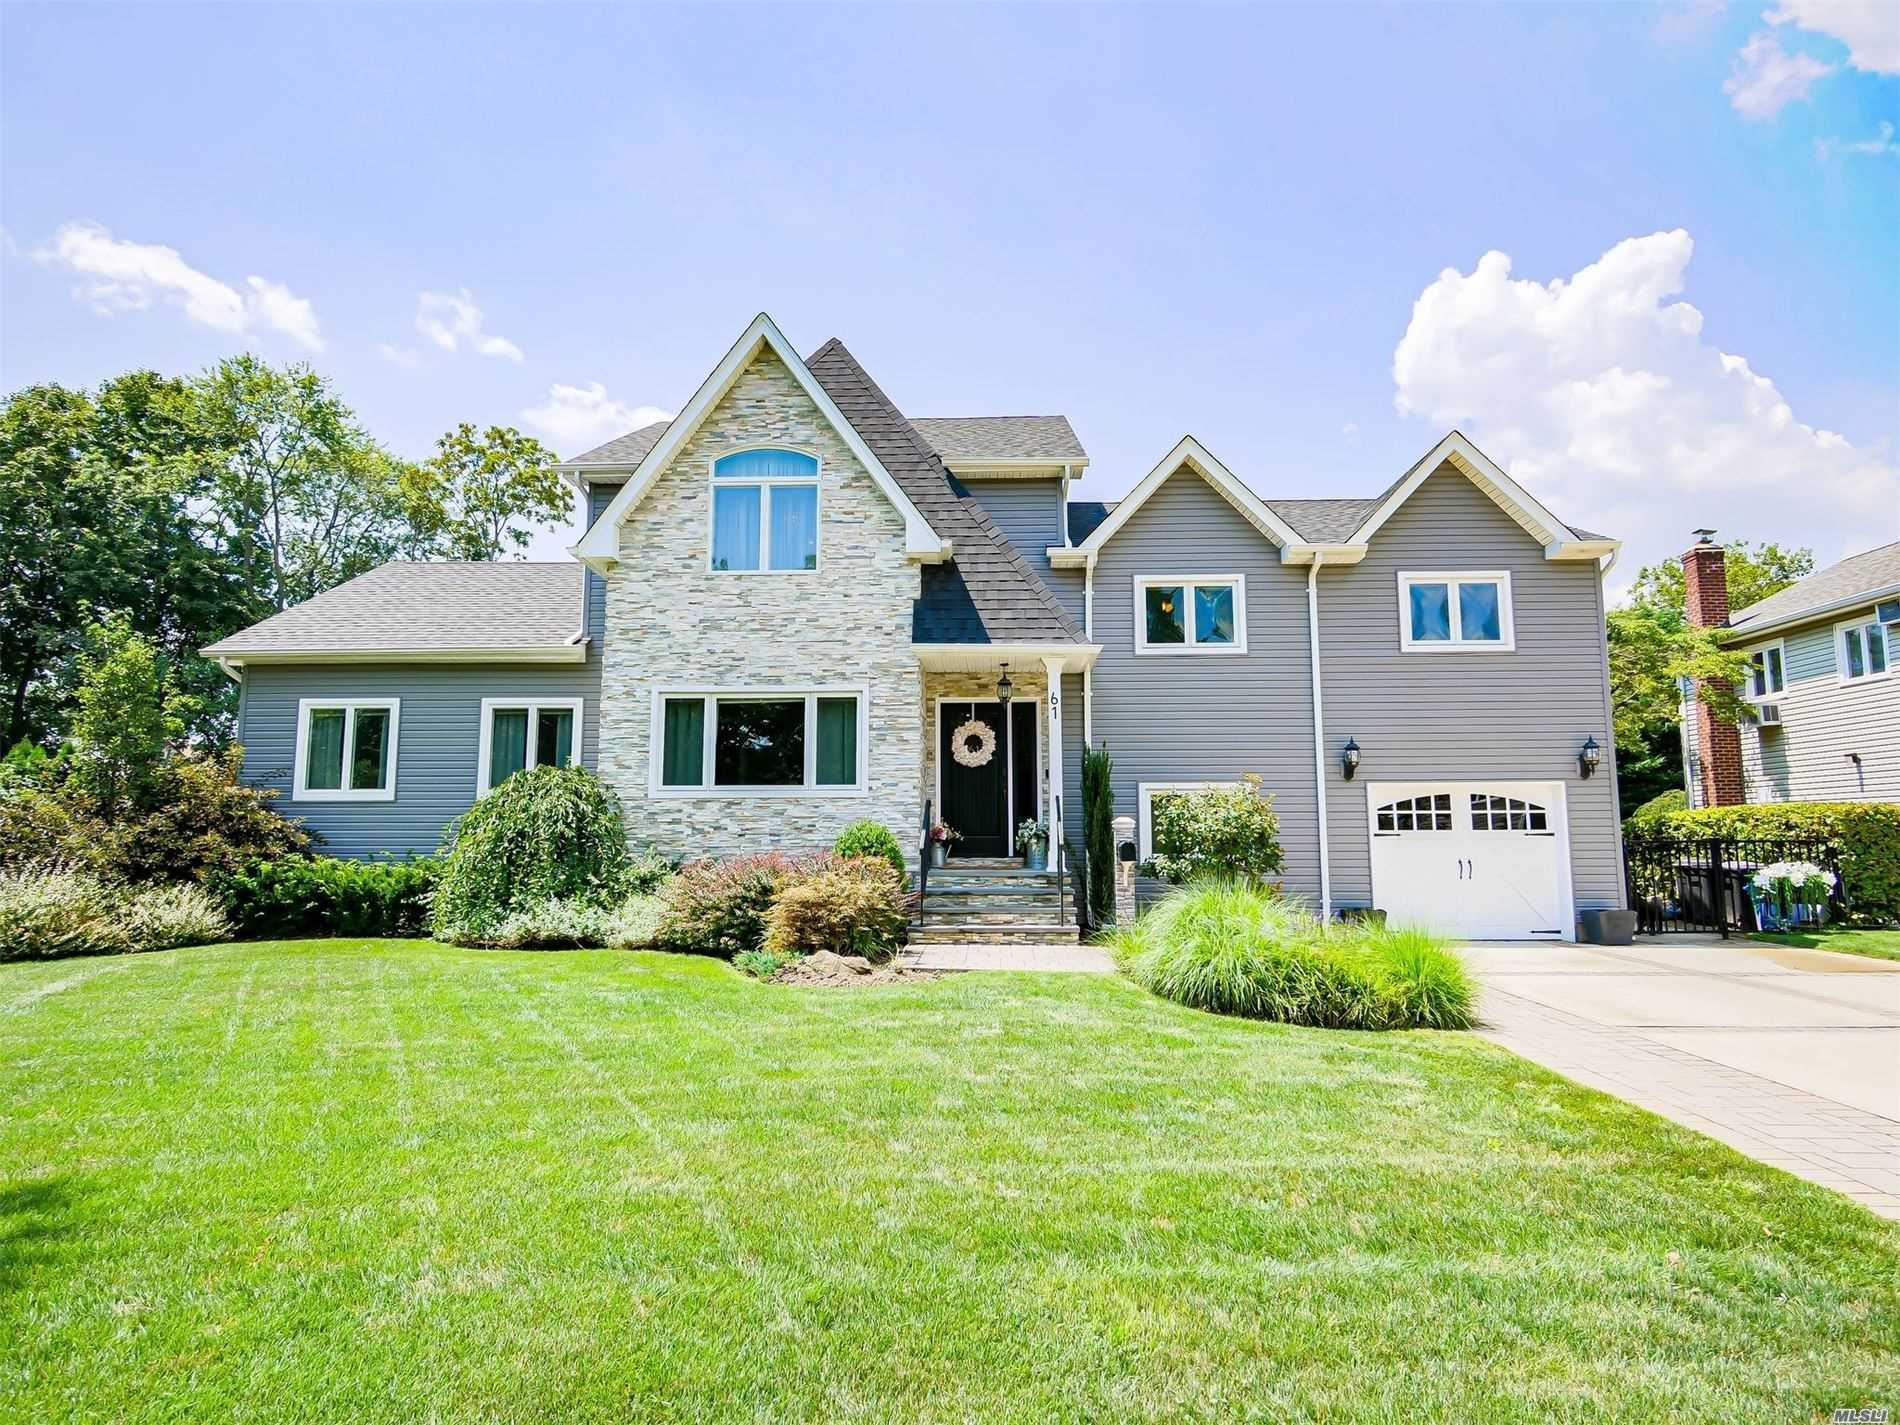 61 Bengryfield Drive, East Williston, NY 11596 - MLS#: 3236465